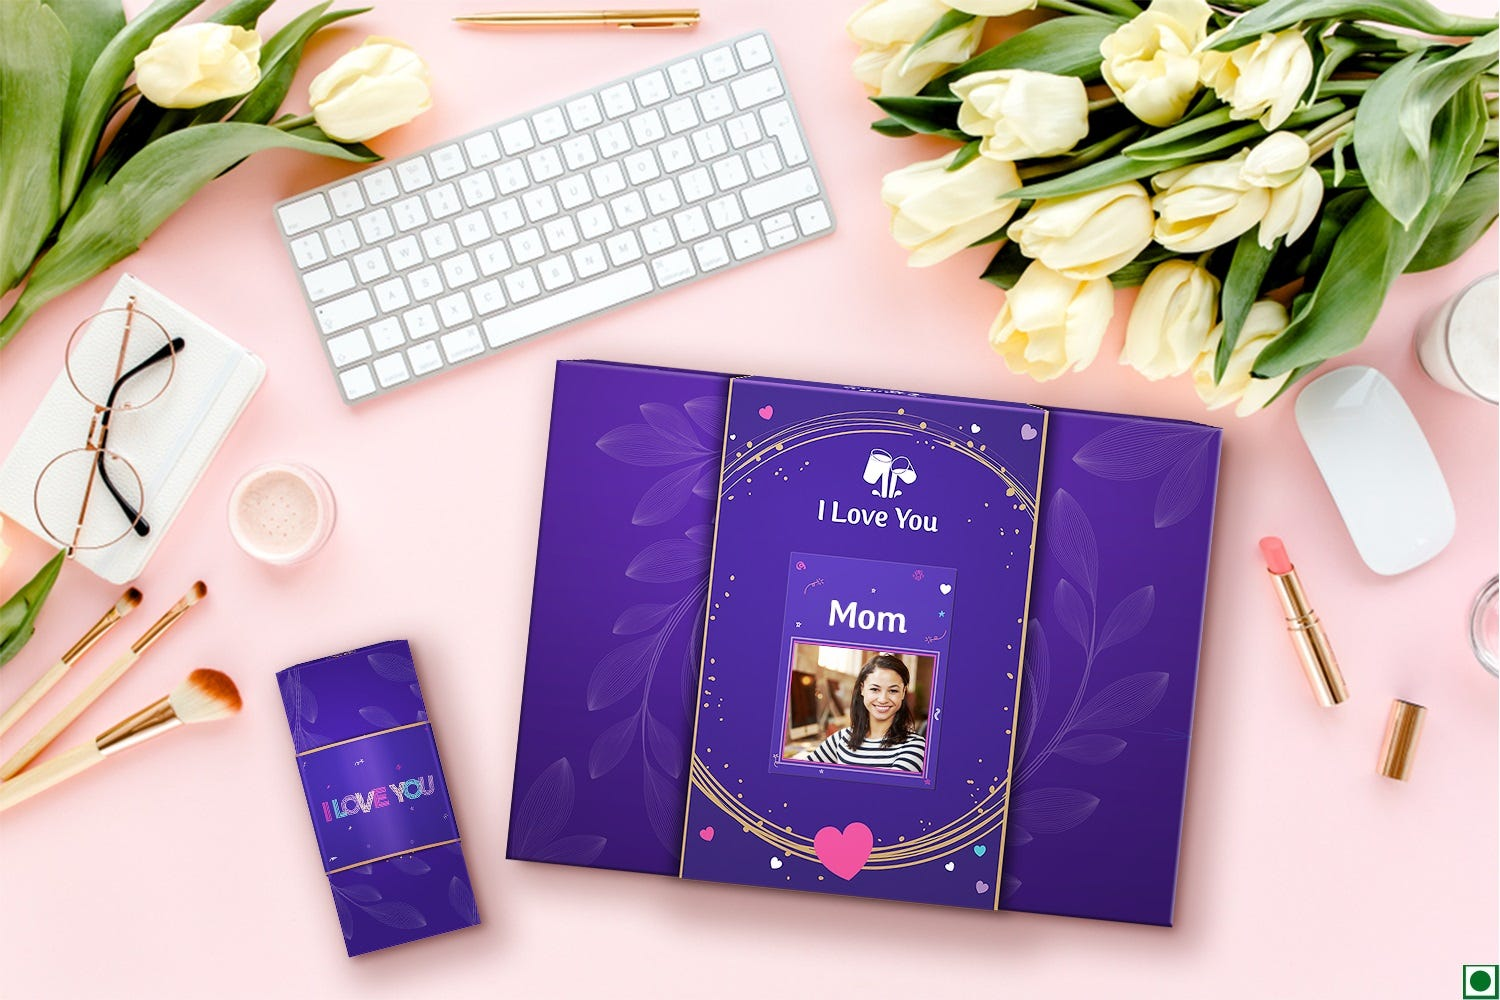 Simple Women S Day Gift Ideas For All The Ladies In Your Life Cadbury Gifting India Joy Deliveries